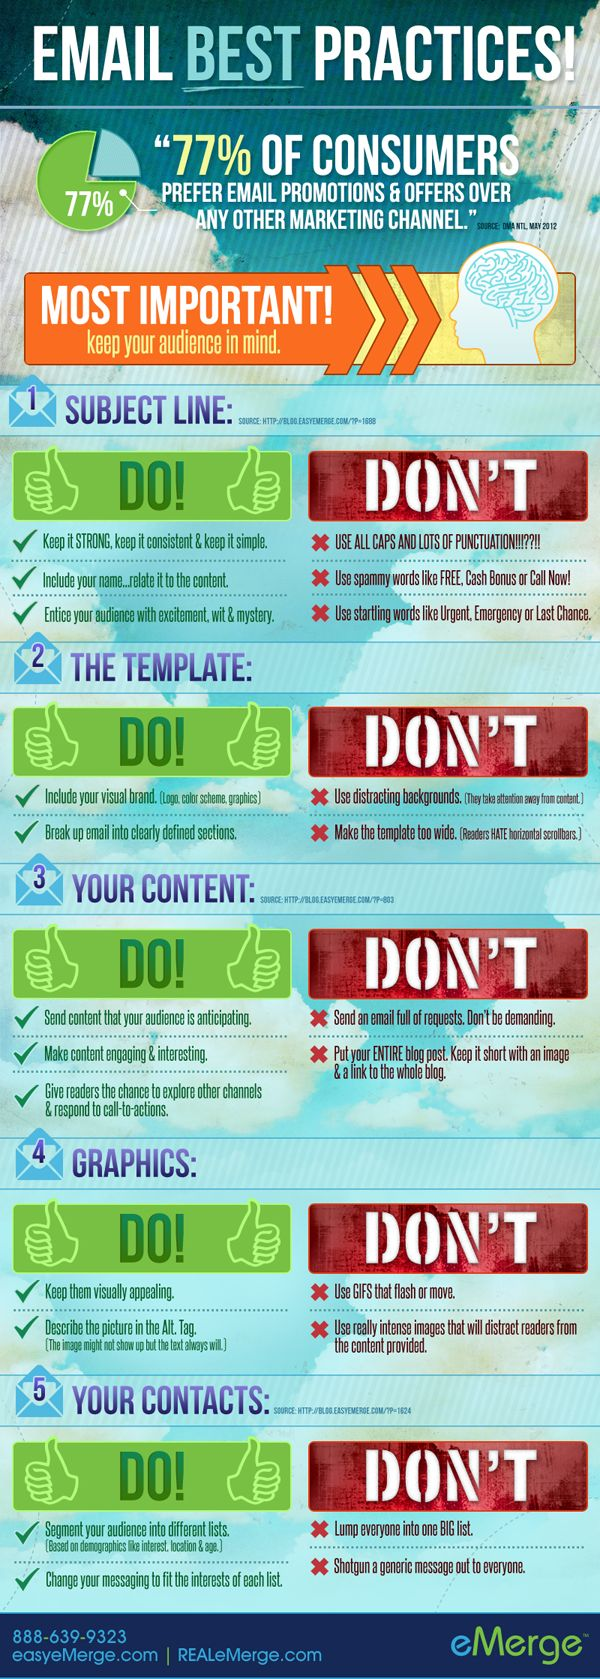 Do's & Don'ts of E-mail marketing